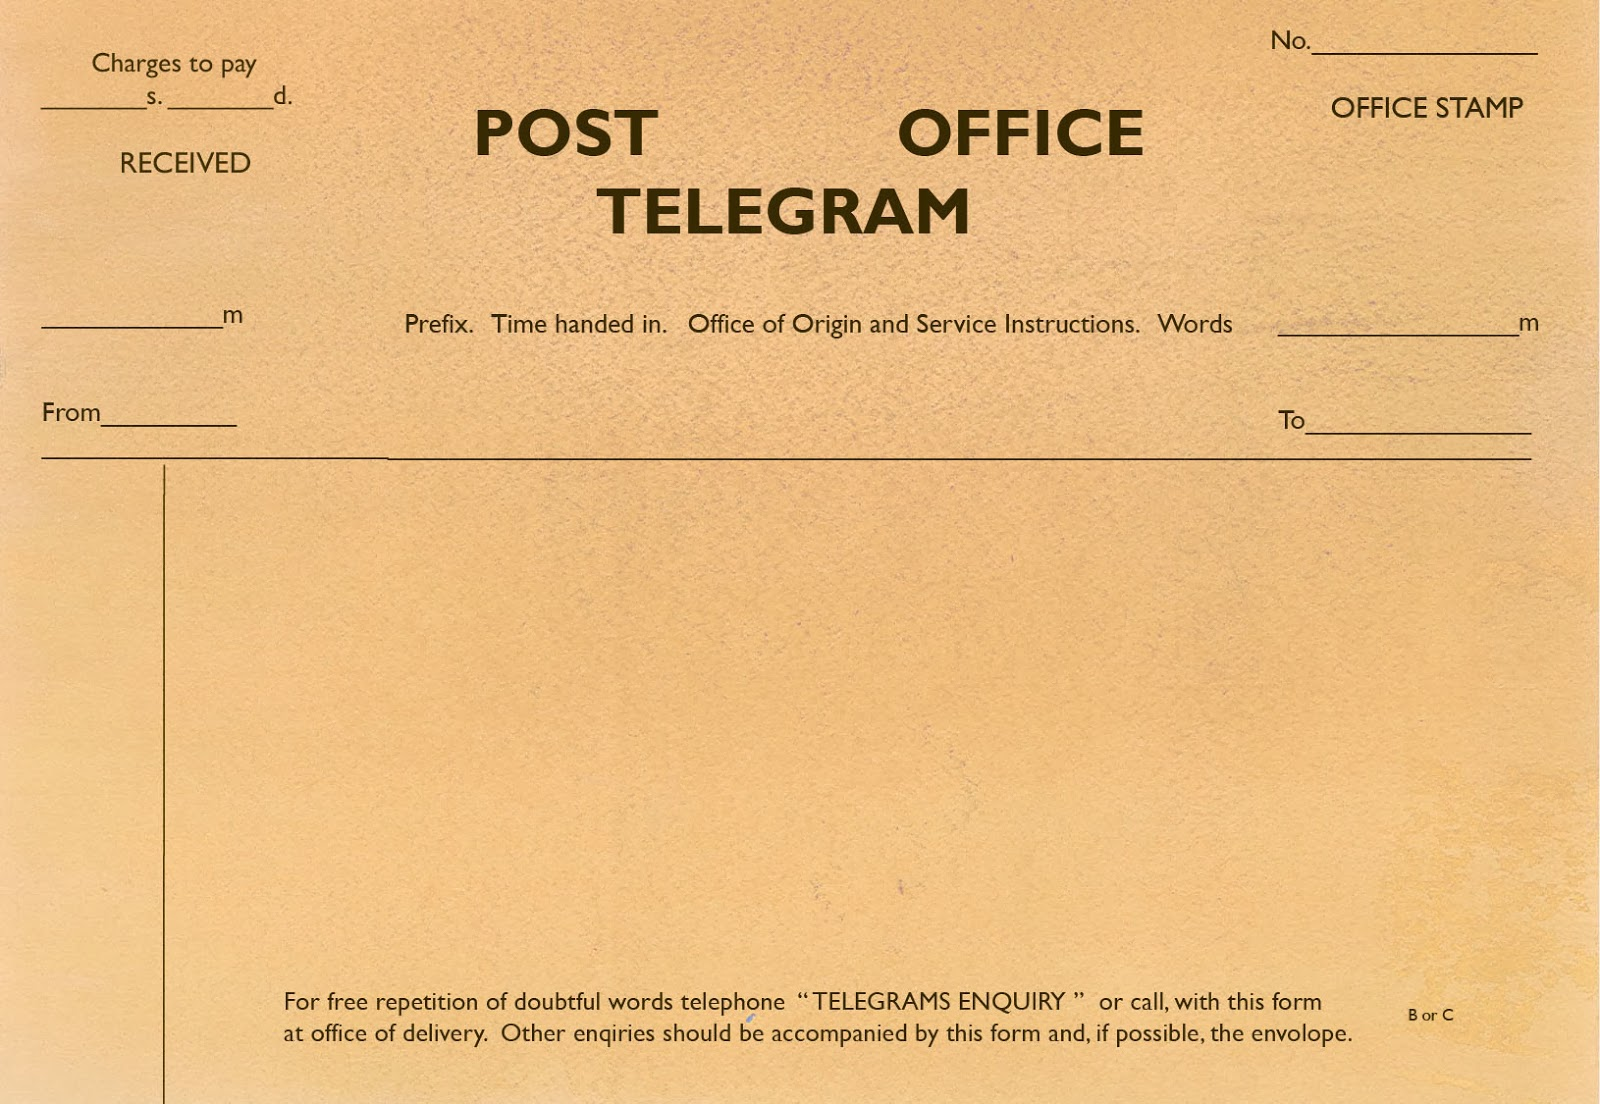 the telegram The first electrical telegraph was invented by samuel soemmering in 1809 using gold wires in water sending messages around two thousand feet away that could be read by determining how much gas was released.